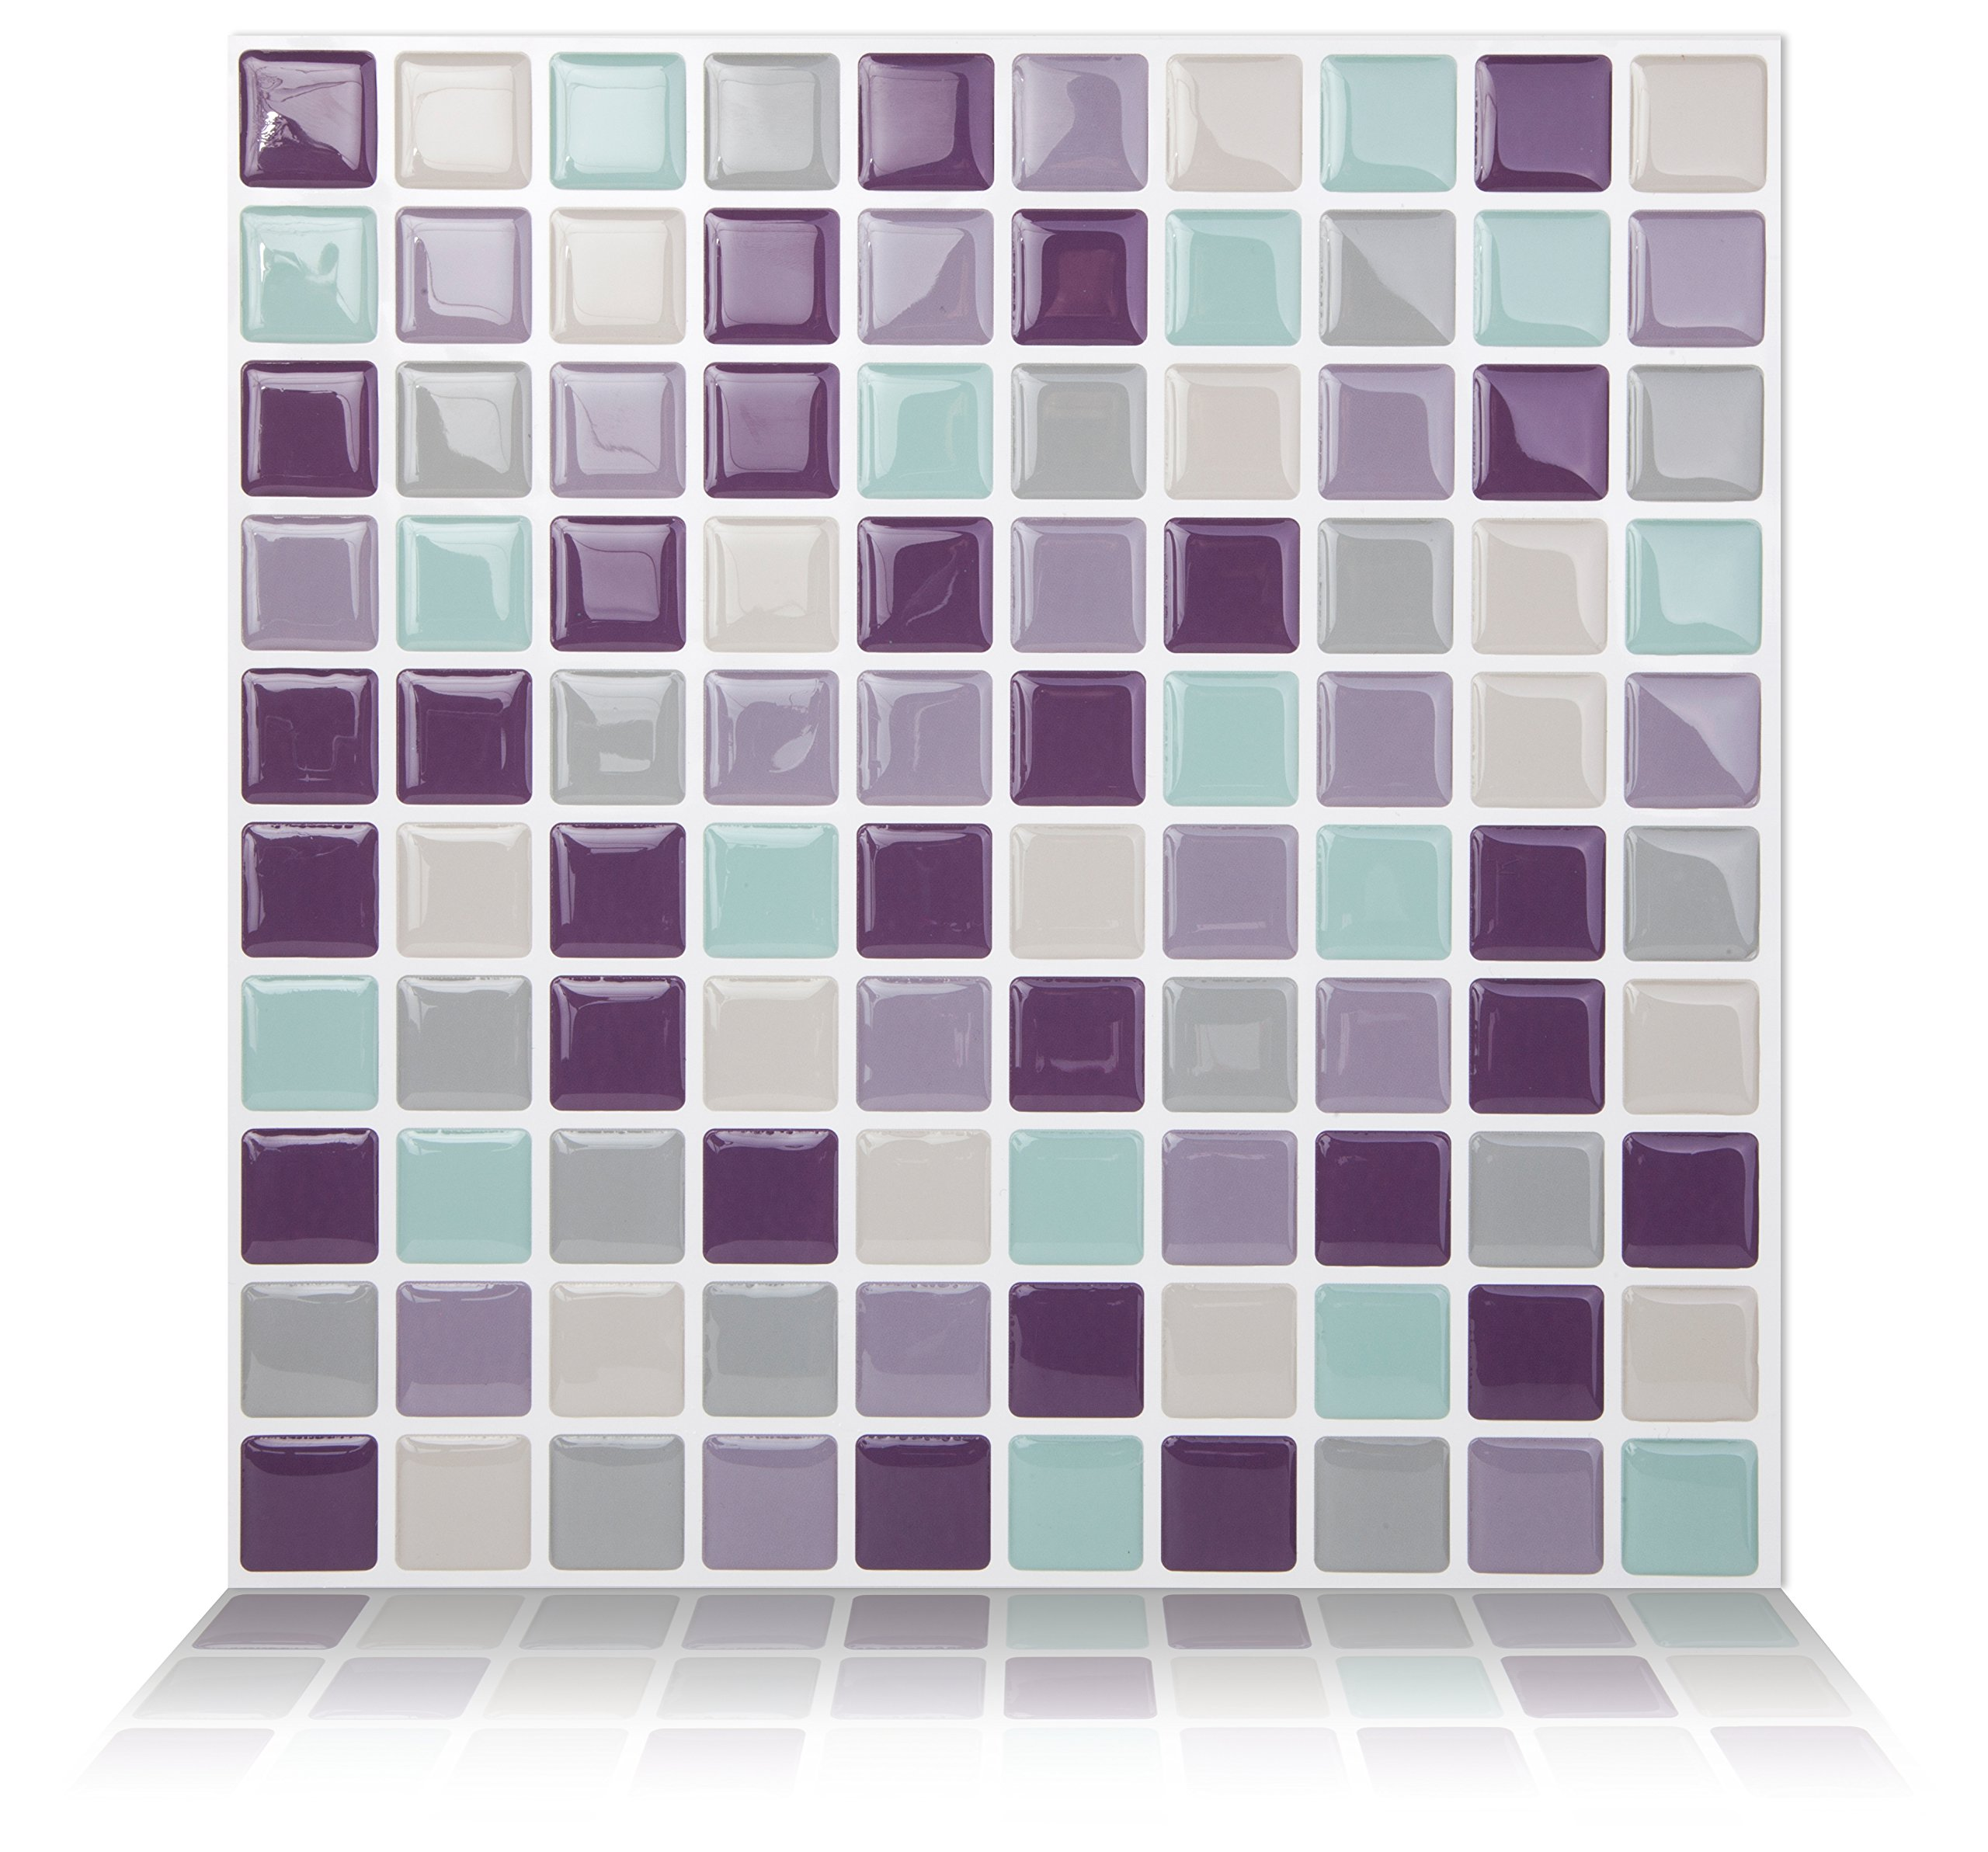 Tic Tac Tiles 10-Sheet Peel and Stick Self Adhesive Removable Stick On Kitchen Backsplash Bathroom 3D Wall Sticker Wallpaper Tiles in Mosaic Violetmint by Tic Tac Tiles